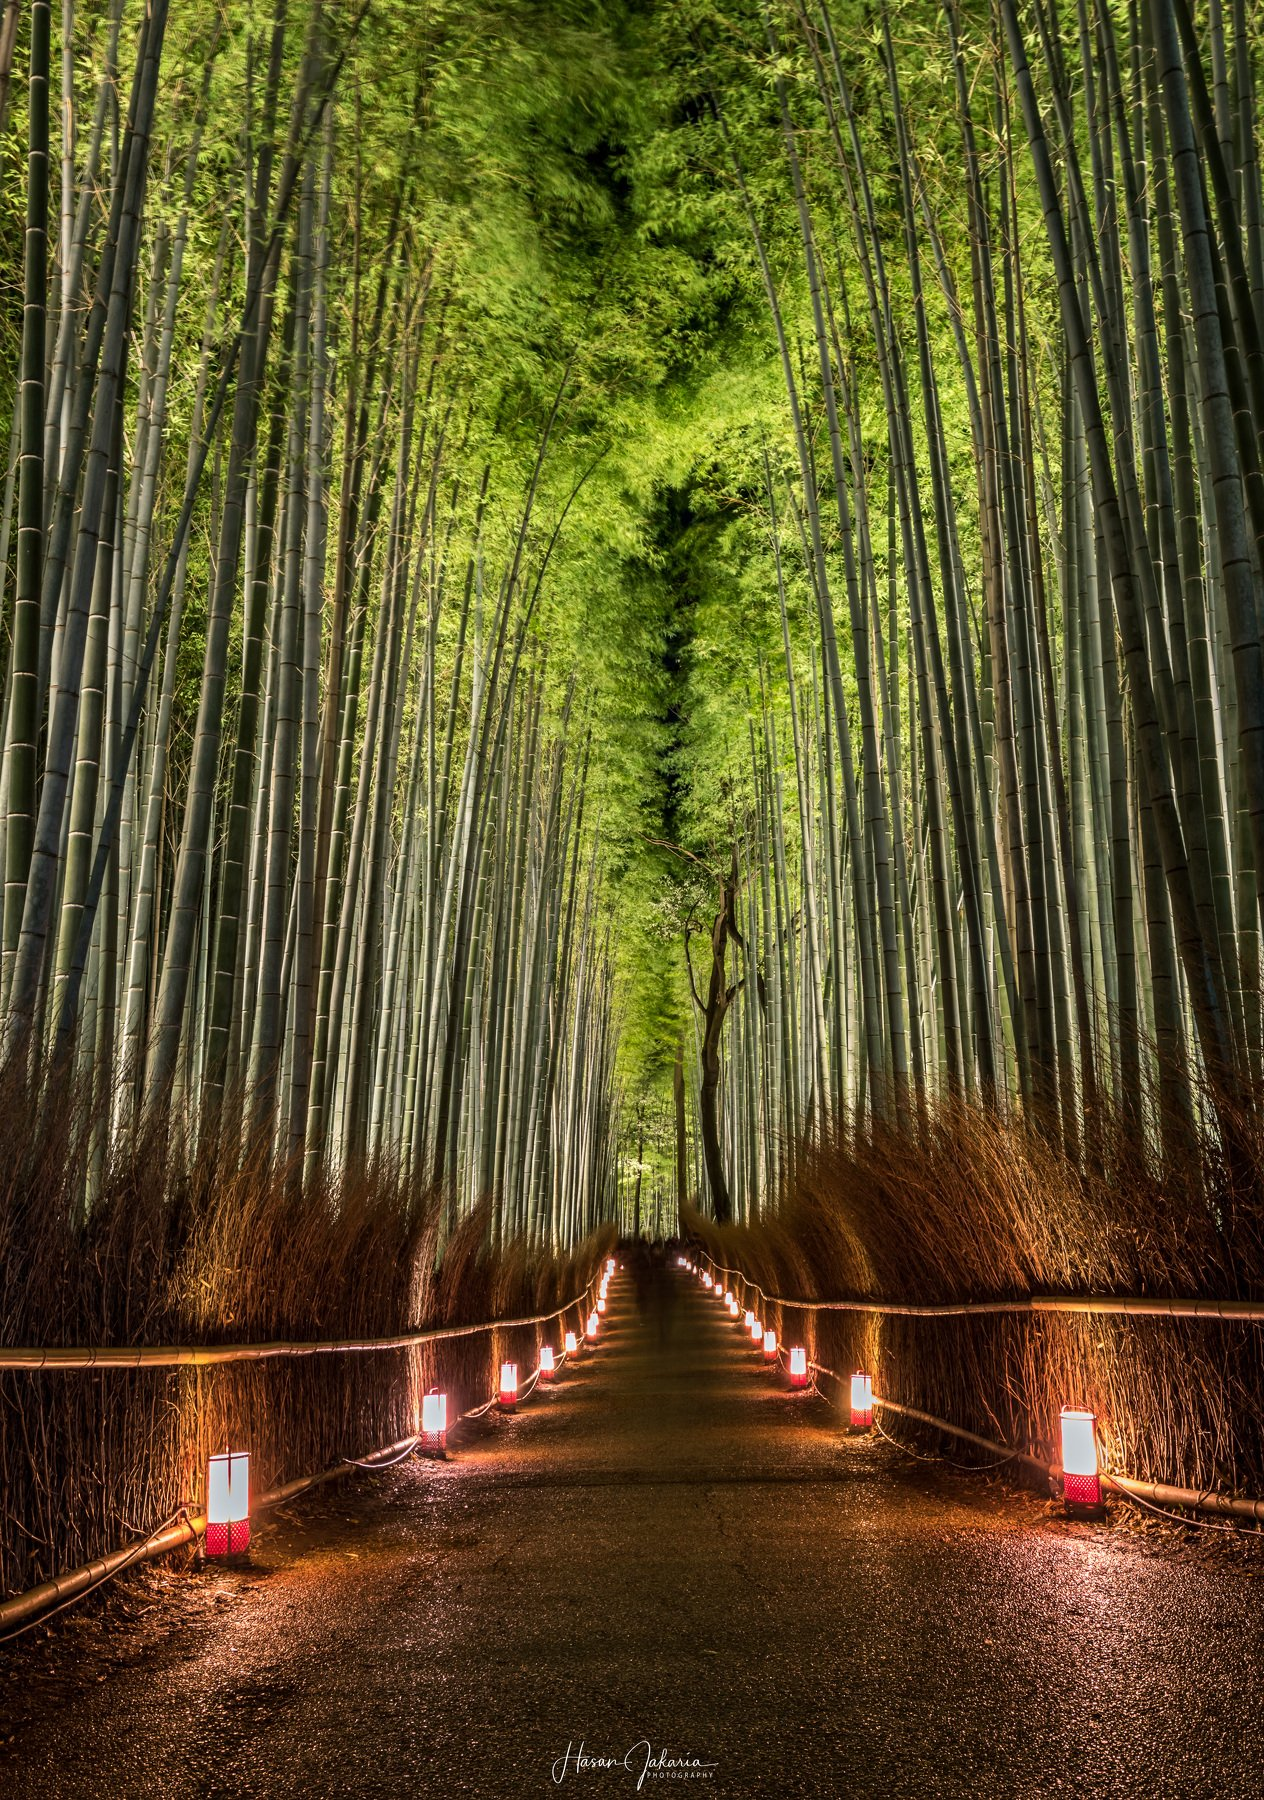 night nature long exposure forest lights kyoto japan bamboo, Hasan Jakaria